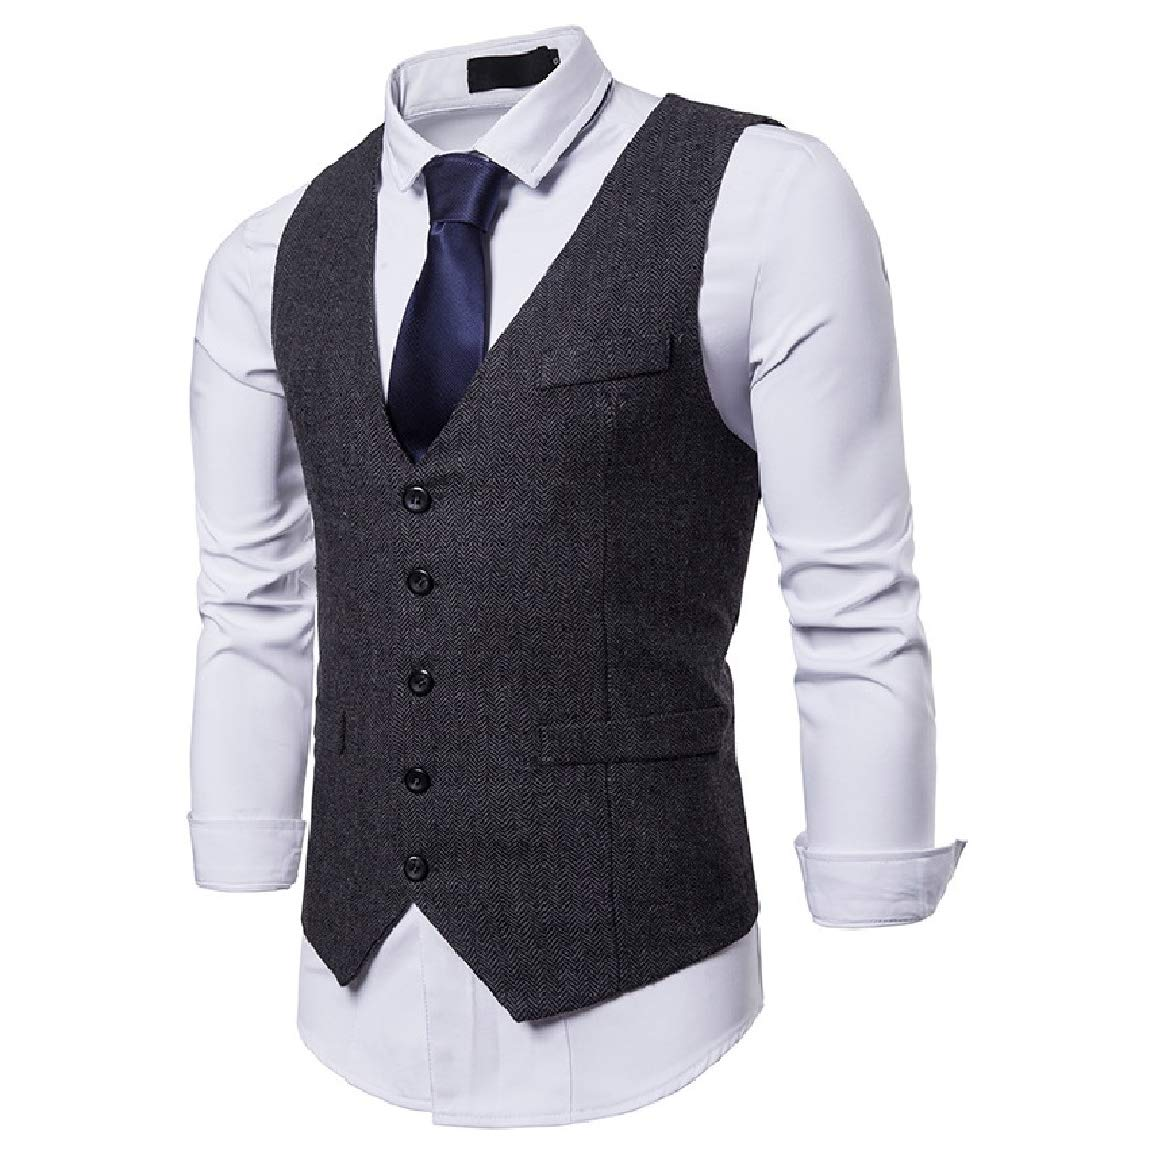 Nicelly Mens Stylish Trim-Fit Autumn Single-Breasted Casual Premium Suit Vest